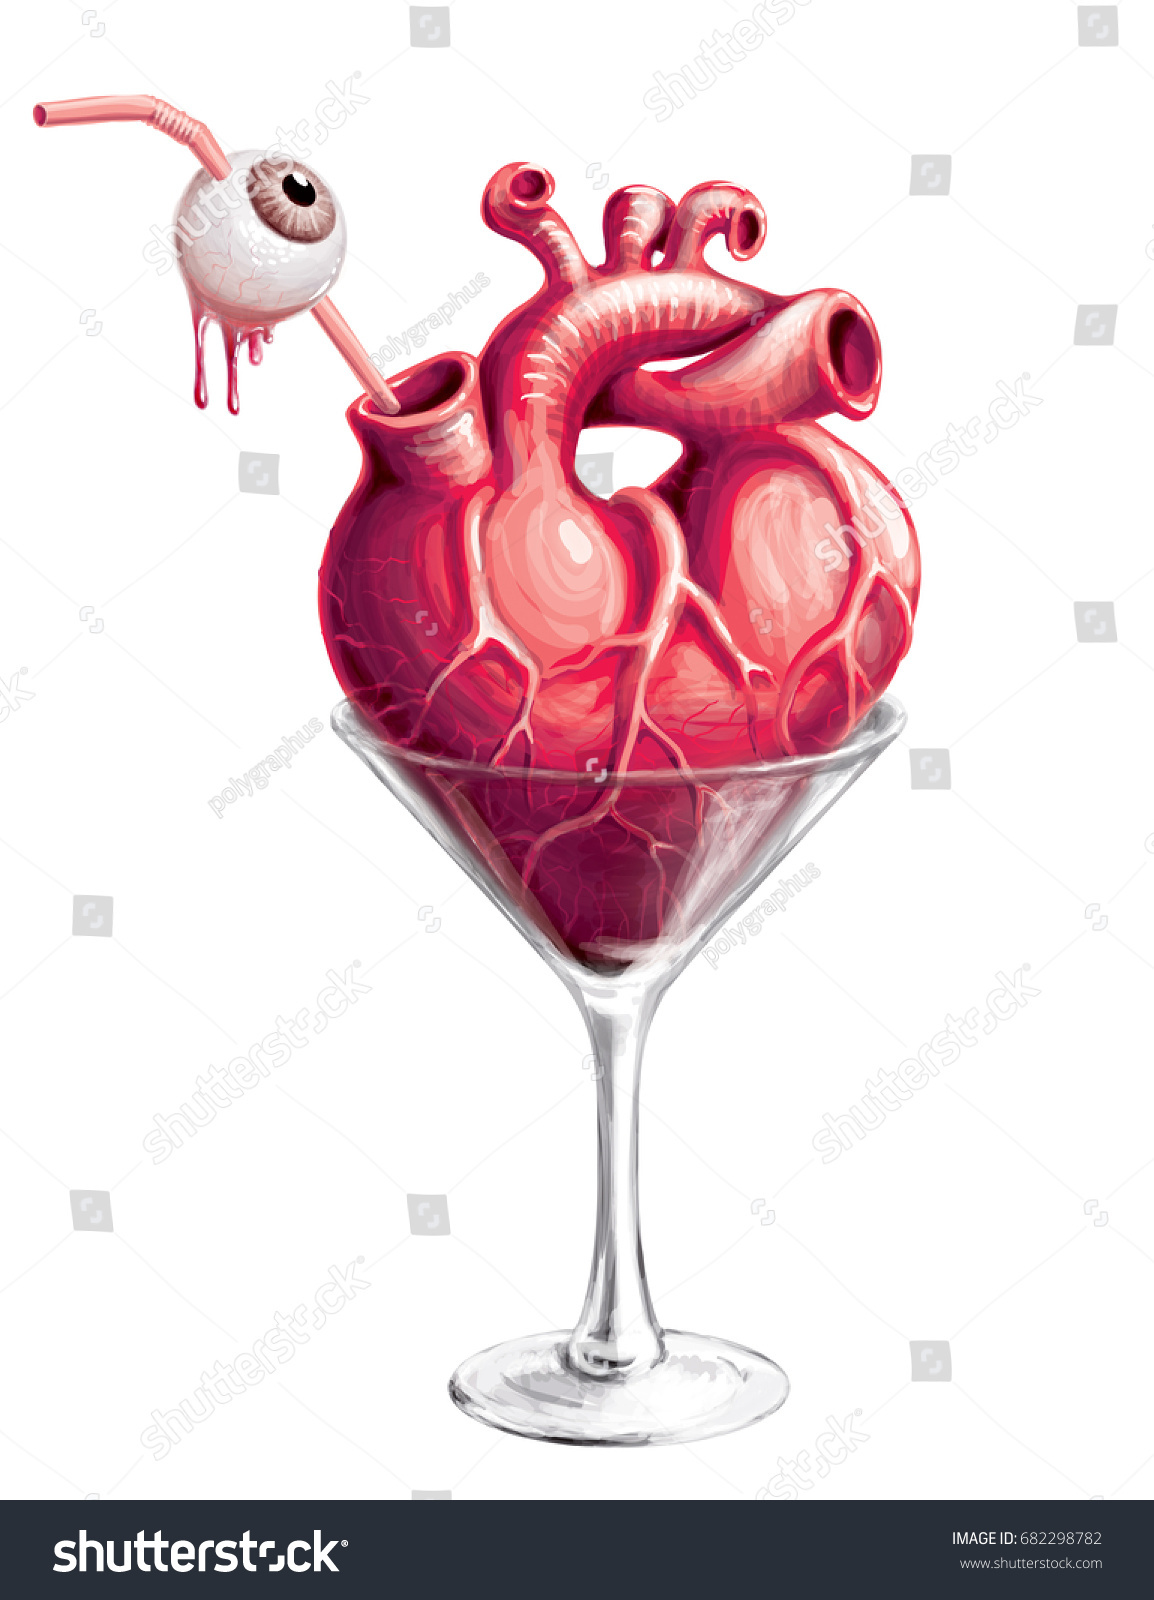 Royalty Free Stock Illustration Of Halloween Cocktail Martini Glass